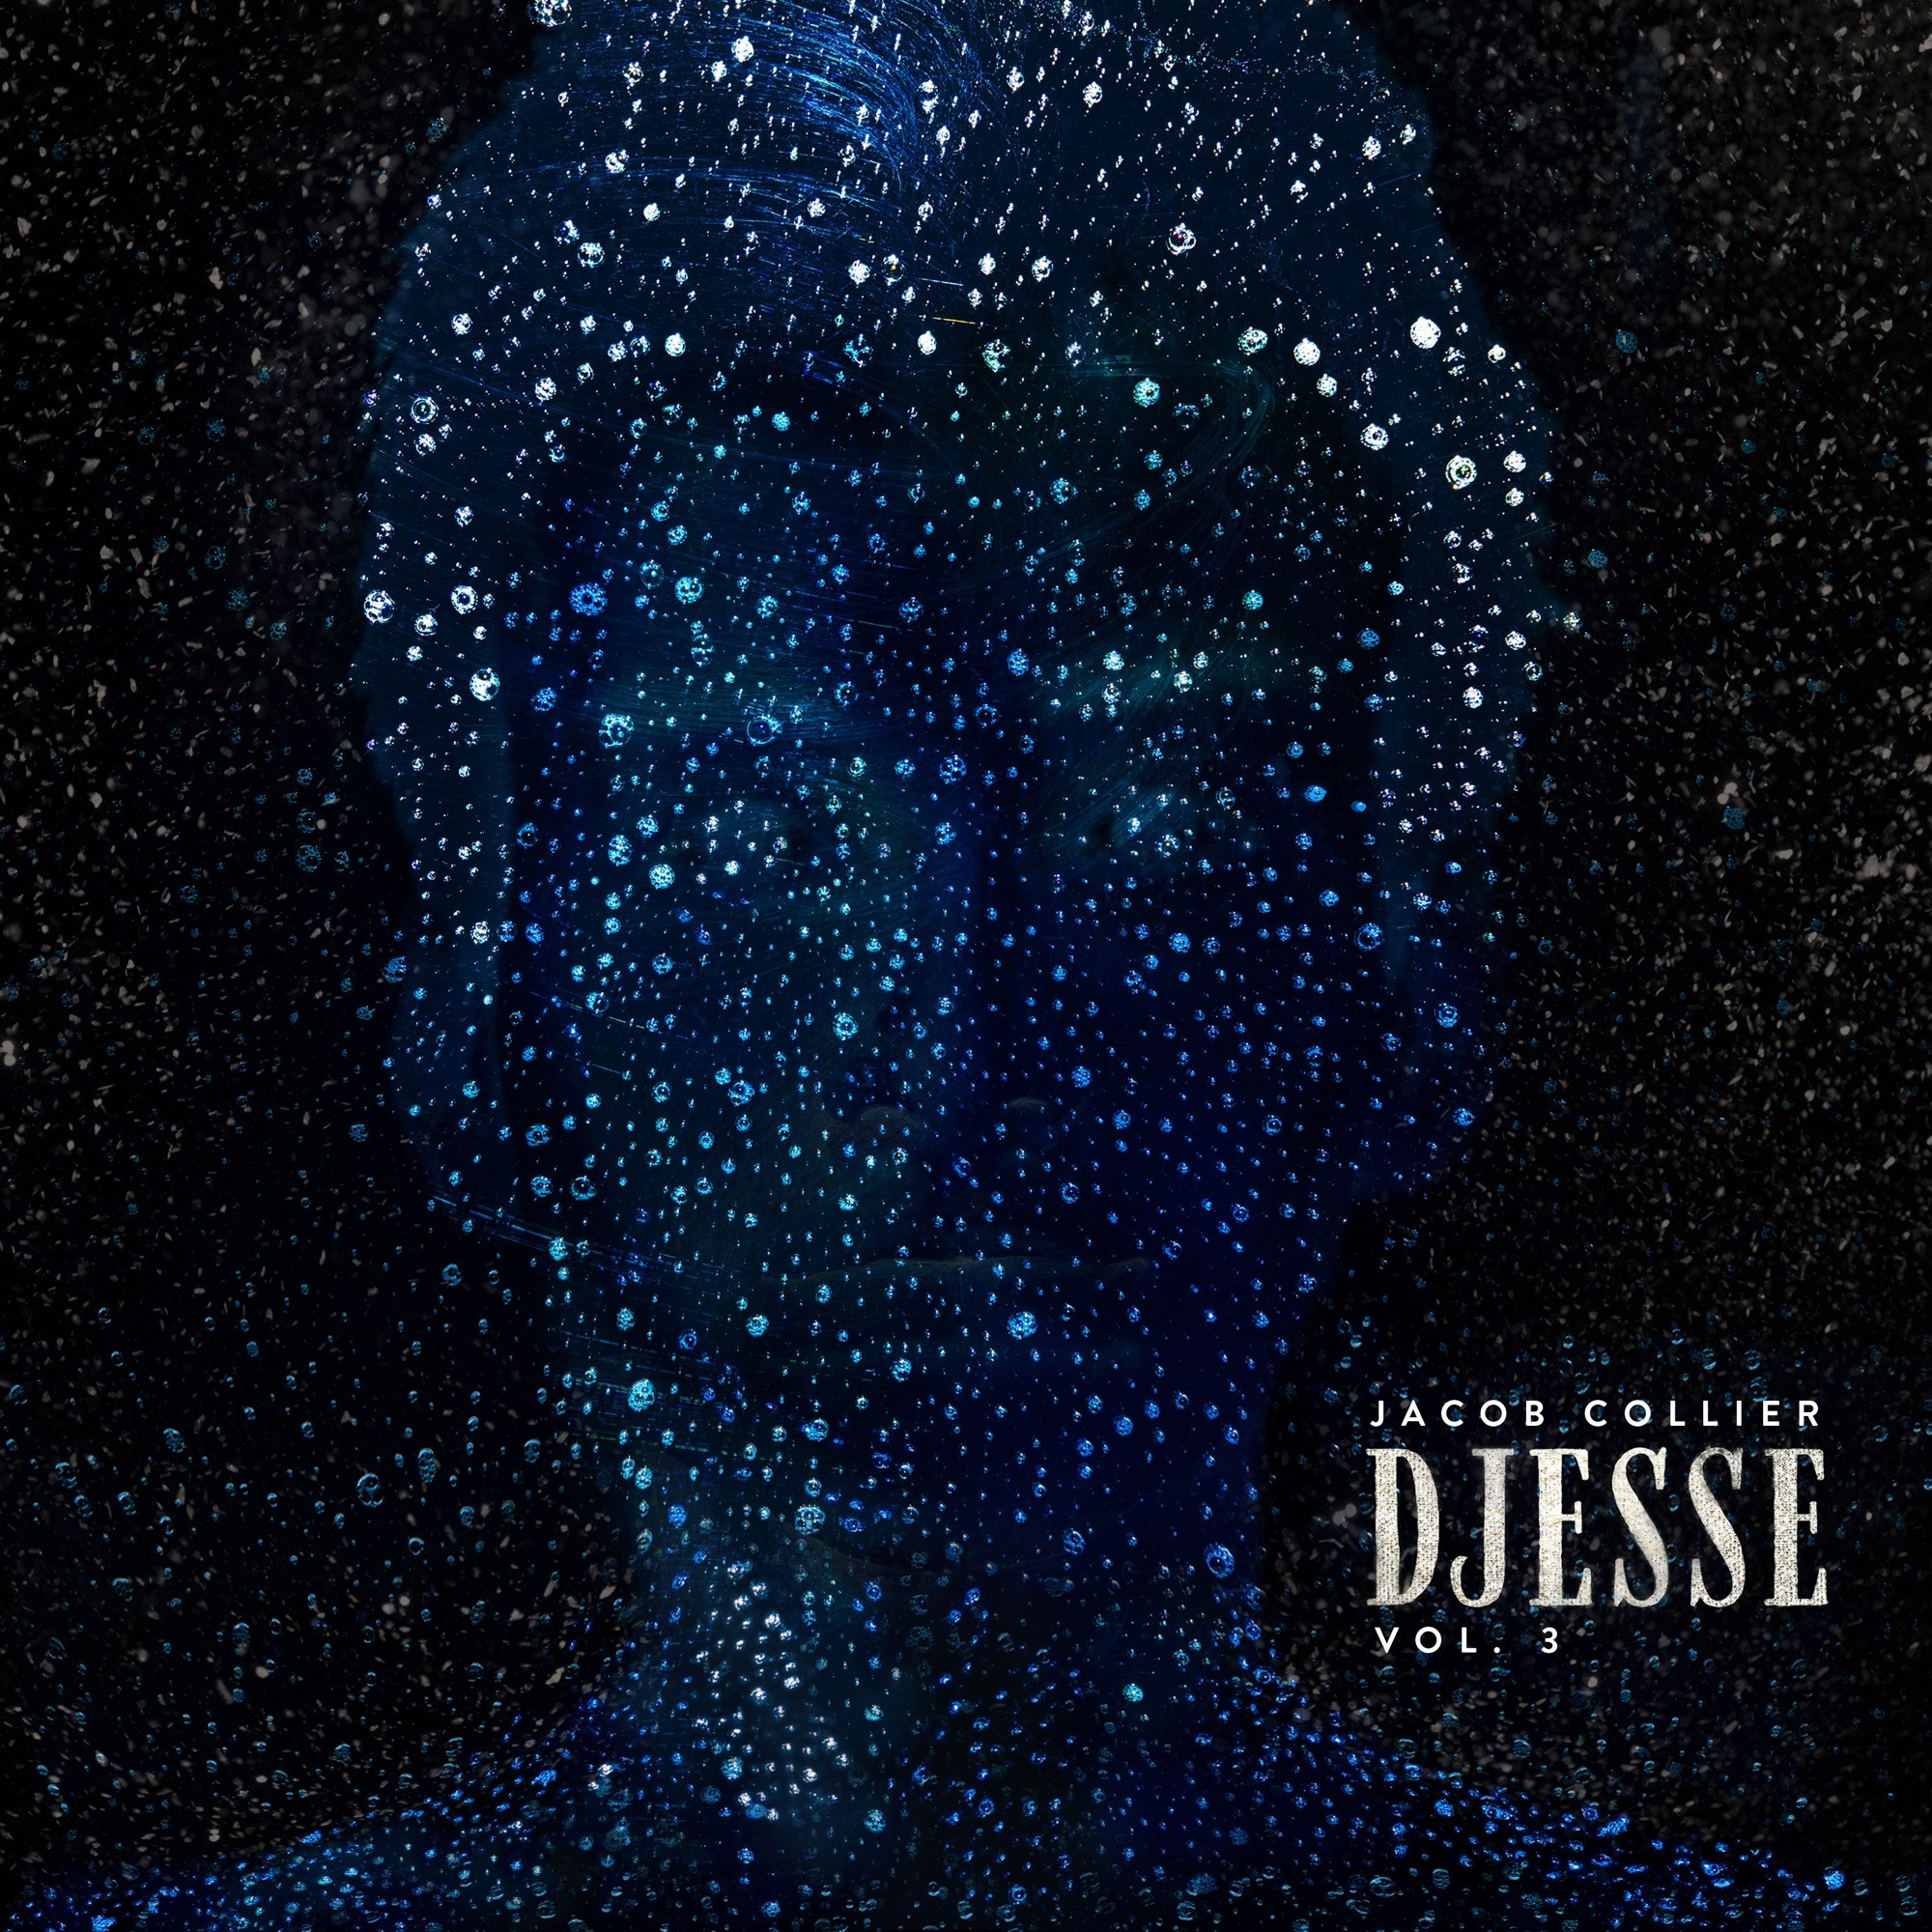 Jacob Collier – Djesse, Vol. 3